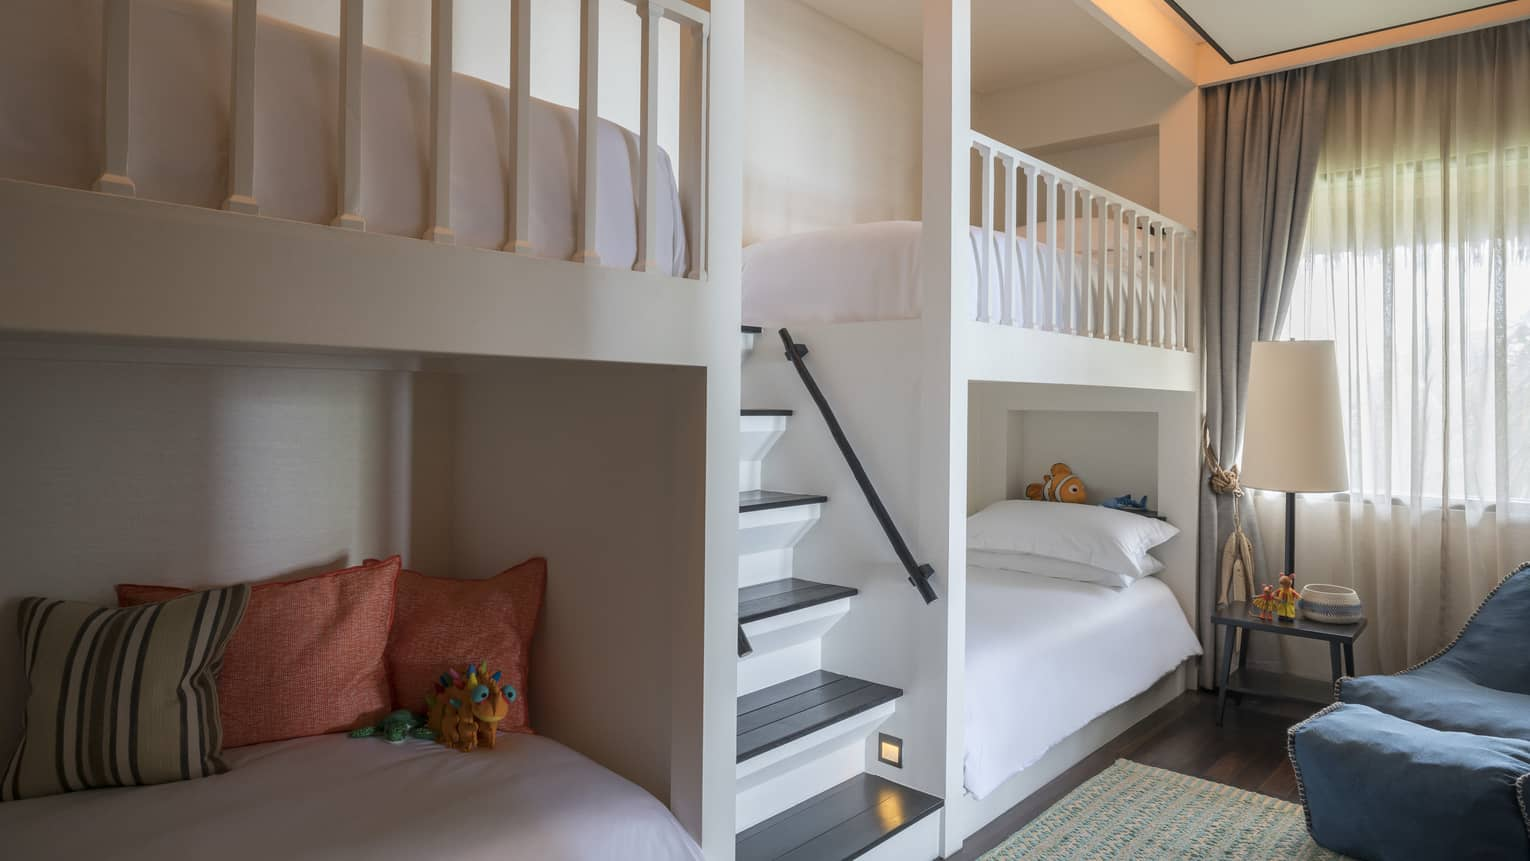 Bunk beds, pillows on either side of small staircase in children's room